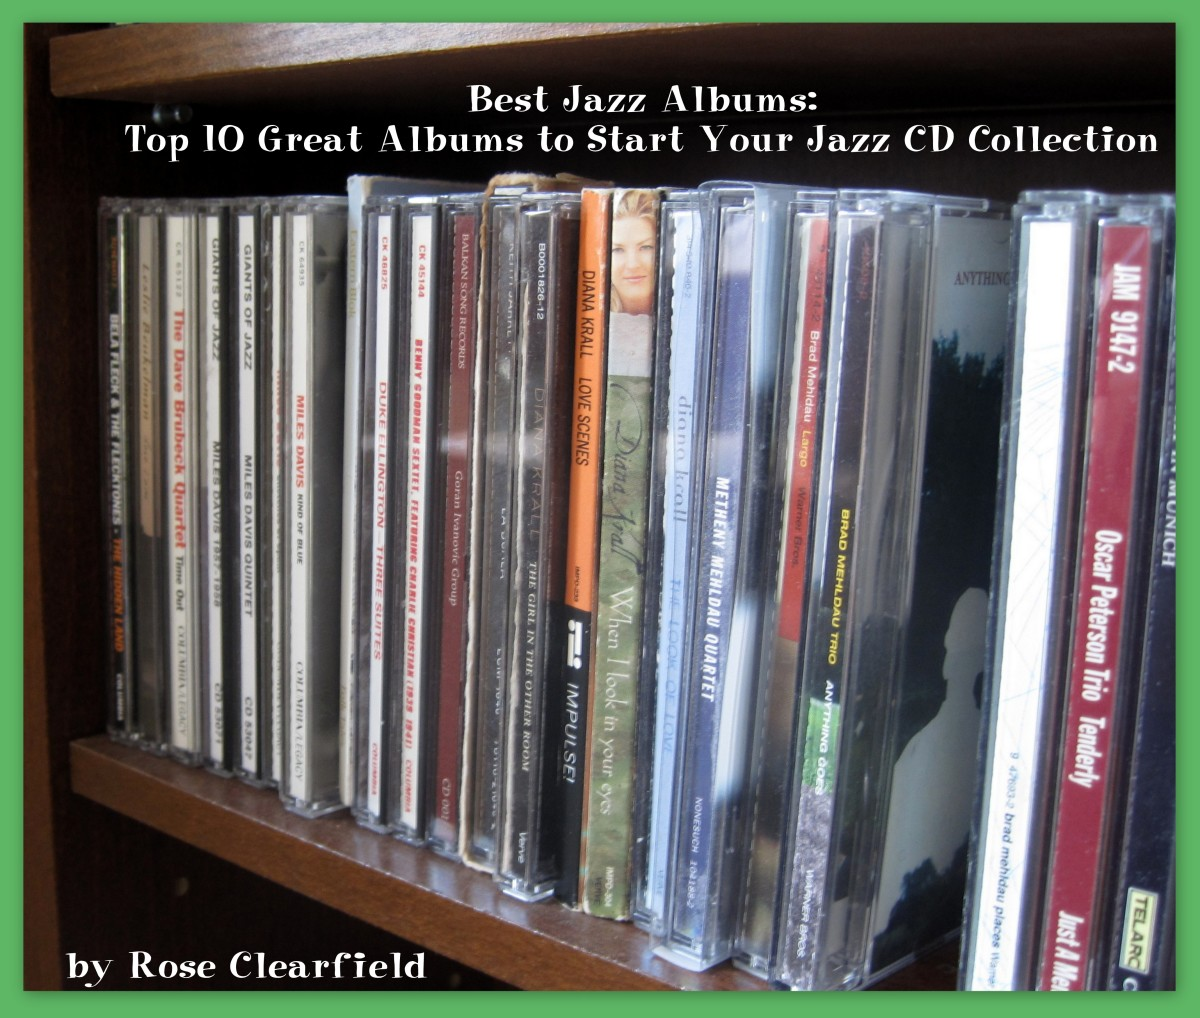 Best Jazz Albums: Top 10 Great Albums to Start Your Jazz CD Collection